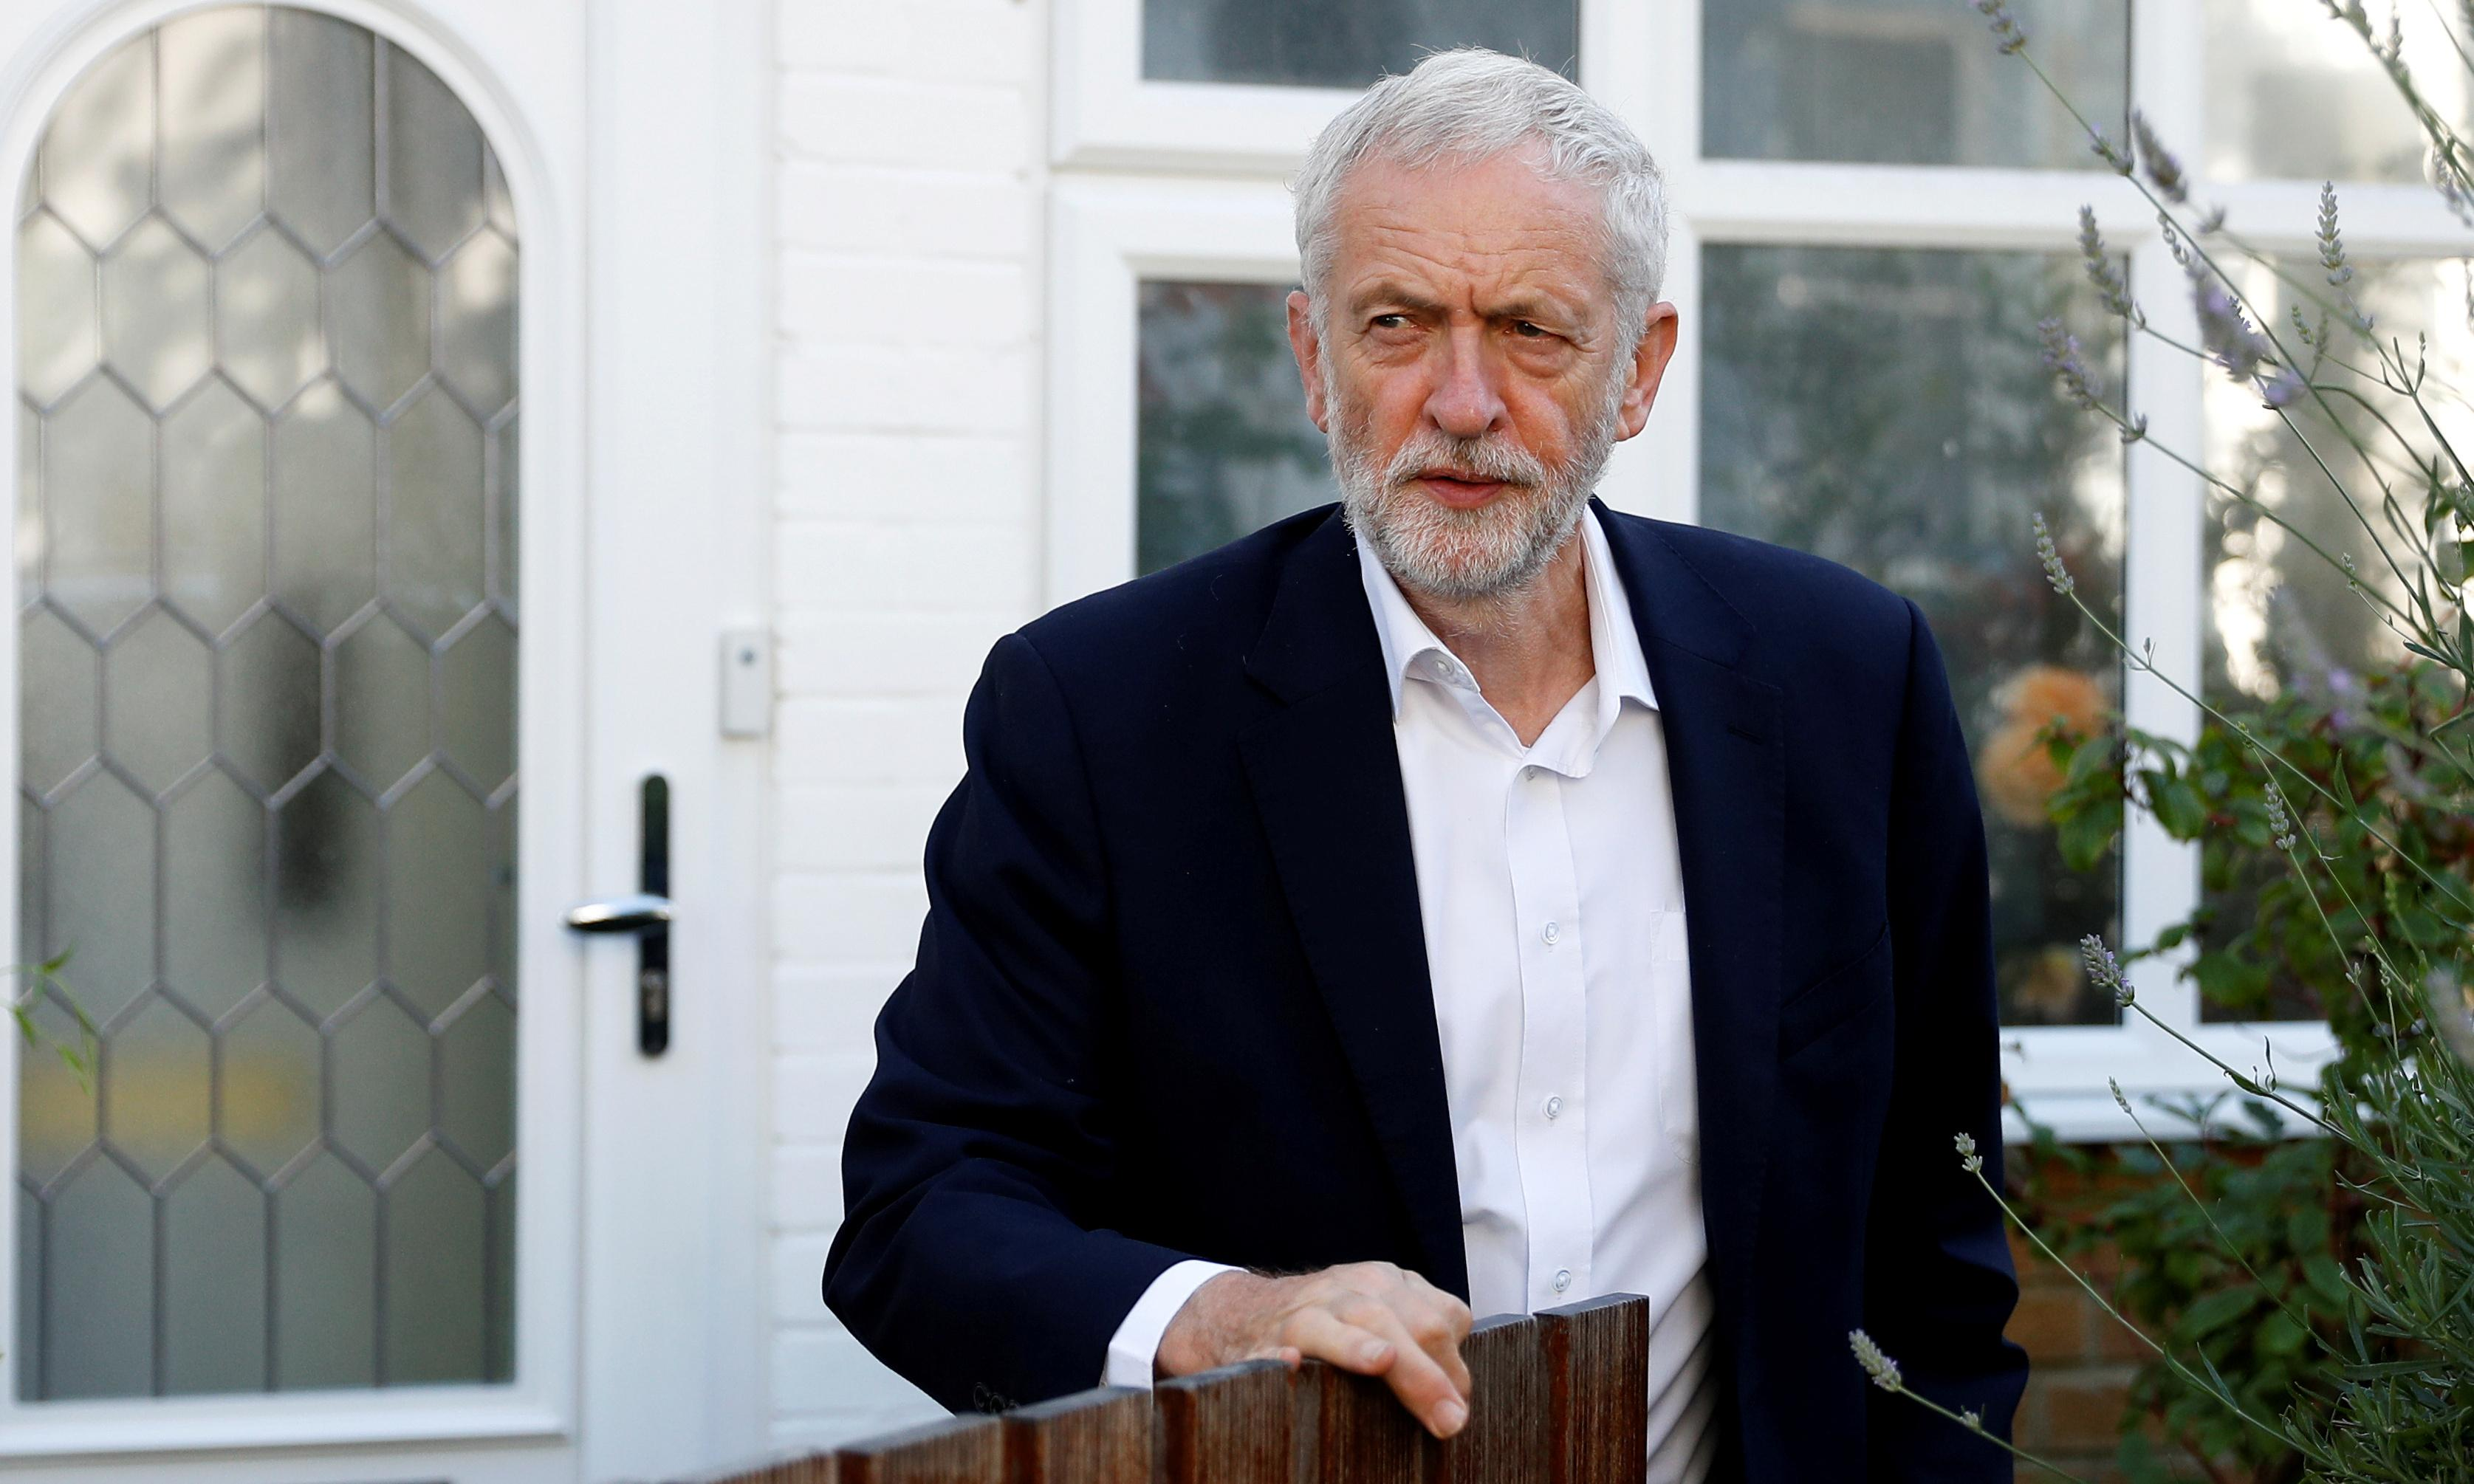 Labour peers tell Corbyn: you have failed test of leadership